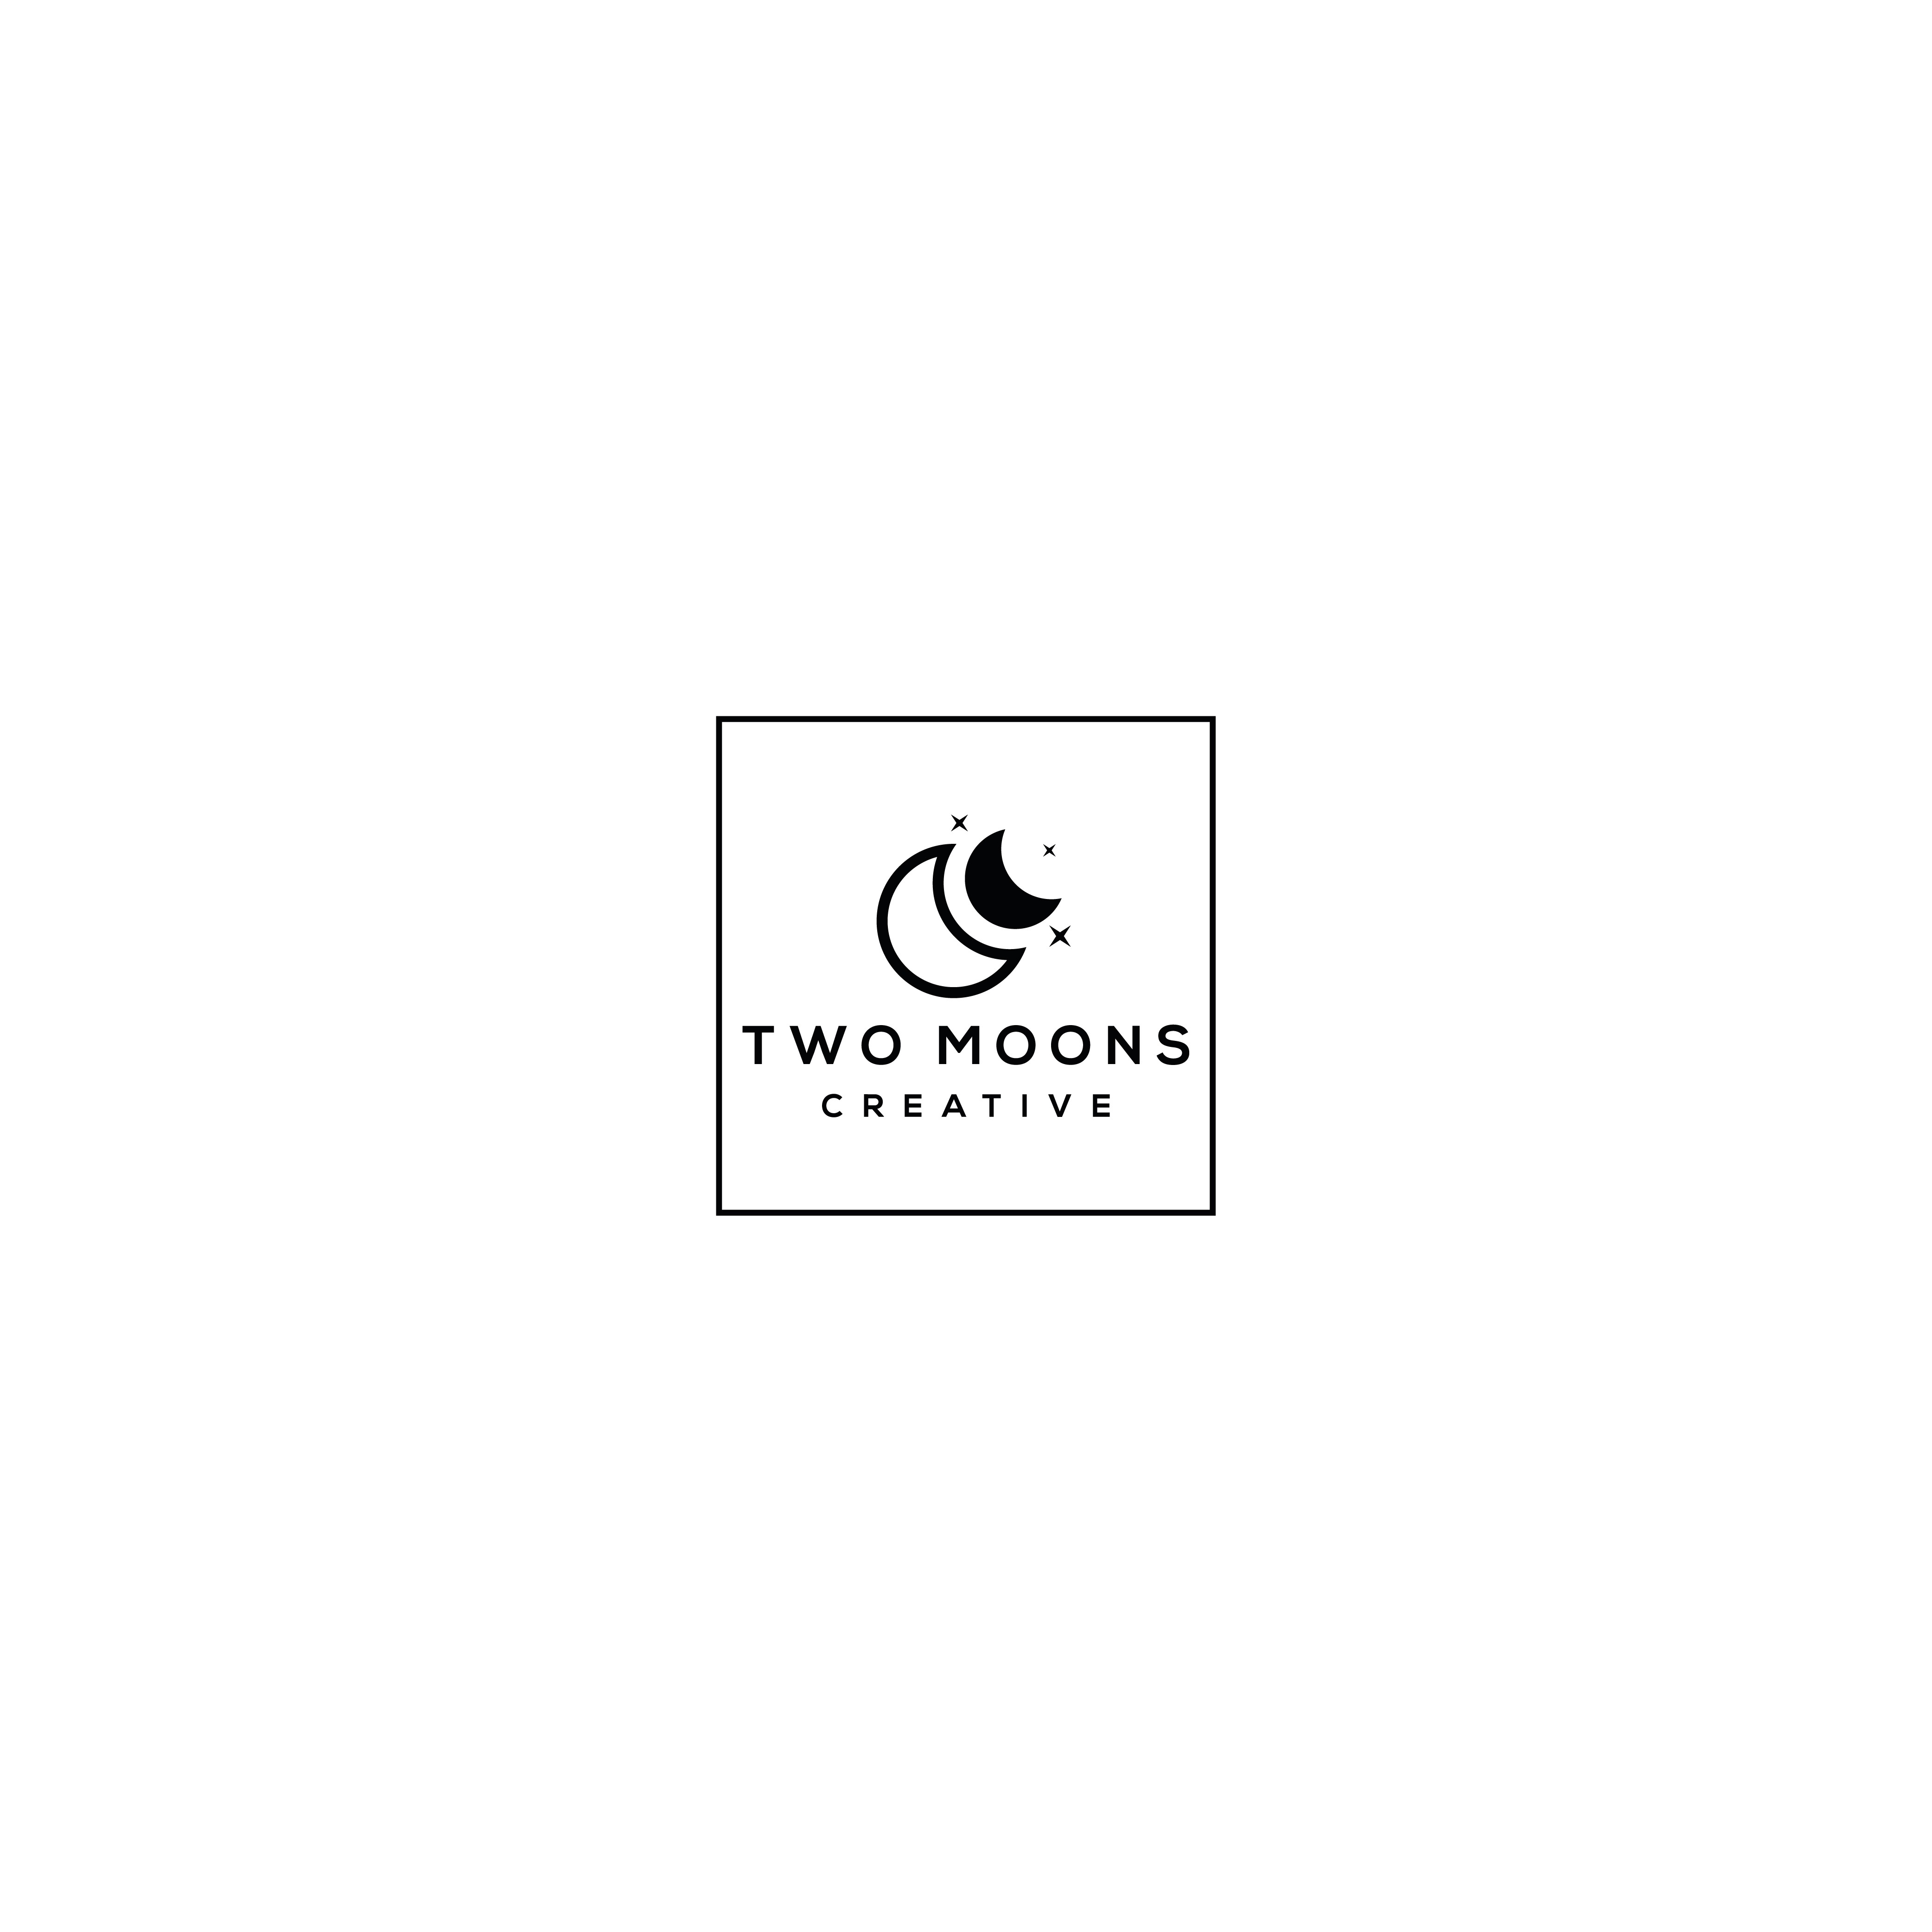 Creative Art House looking for Minimalistic Brand Logo - Two Moons Creative